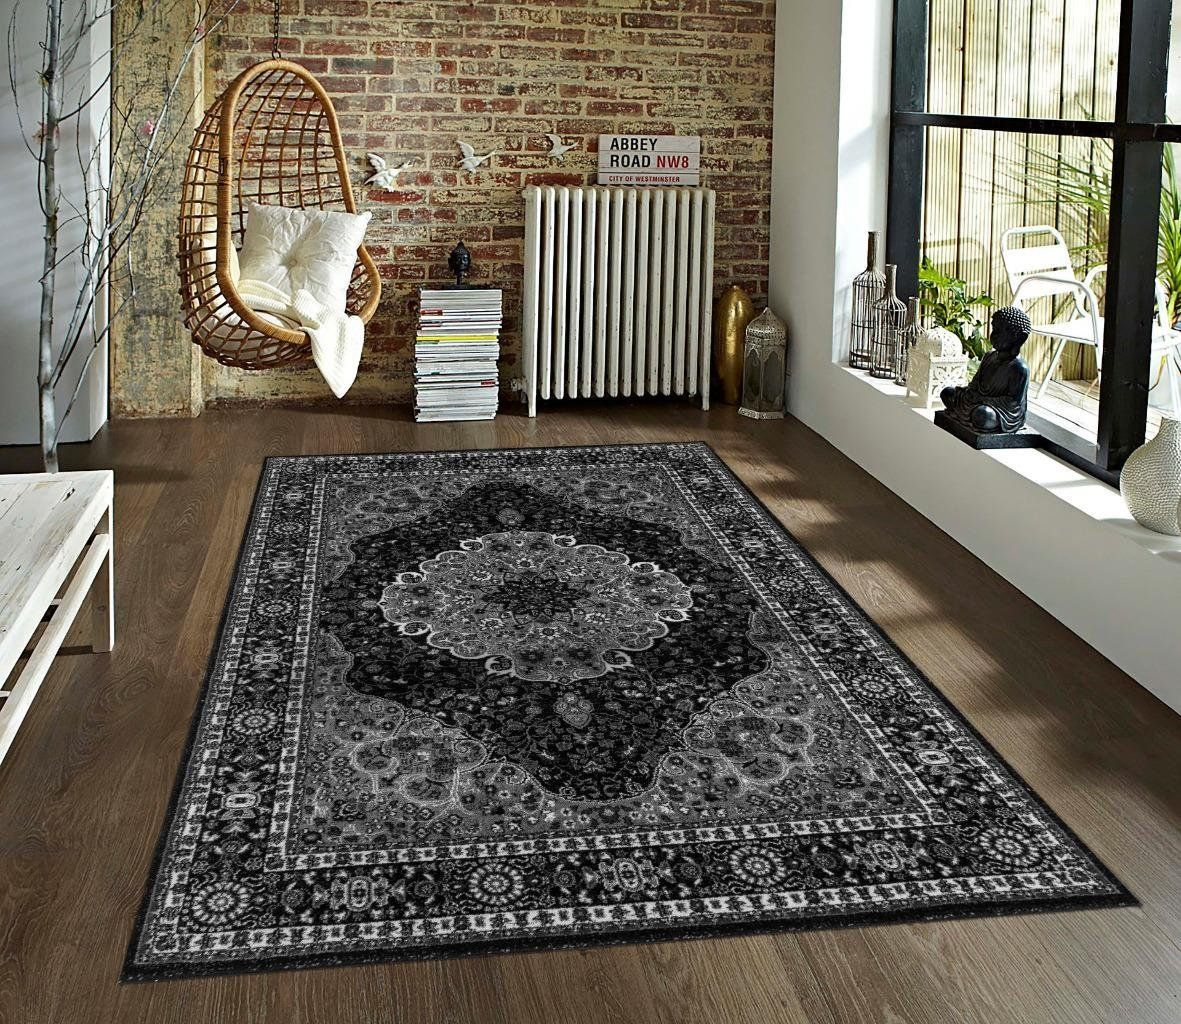 107755 Gray White Black 710x102 Area Rug Carpet Large New Area Rugs Cheap Rugs On Carpet Area Rugs